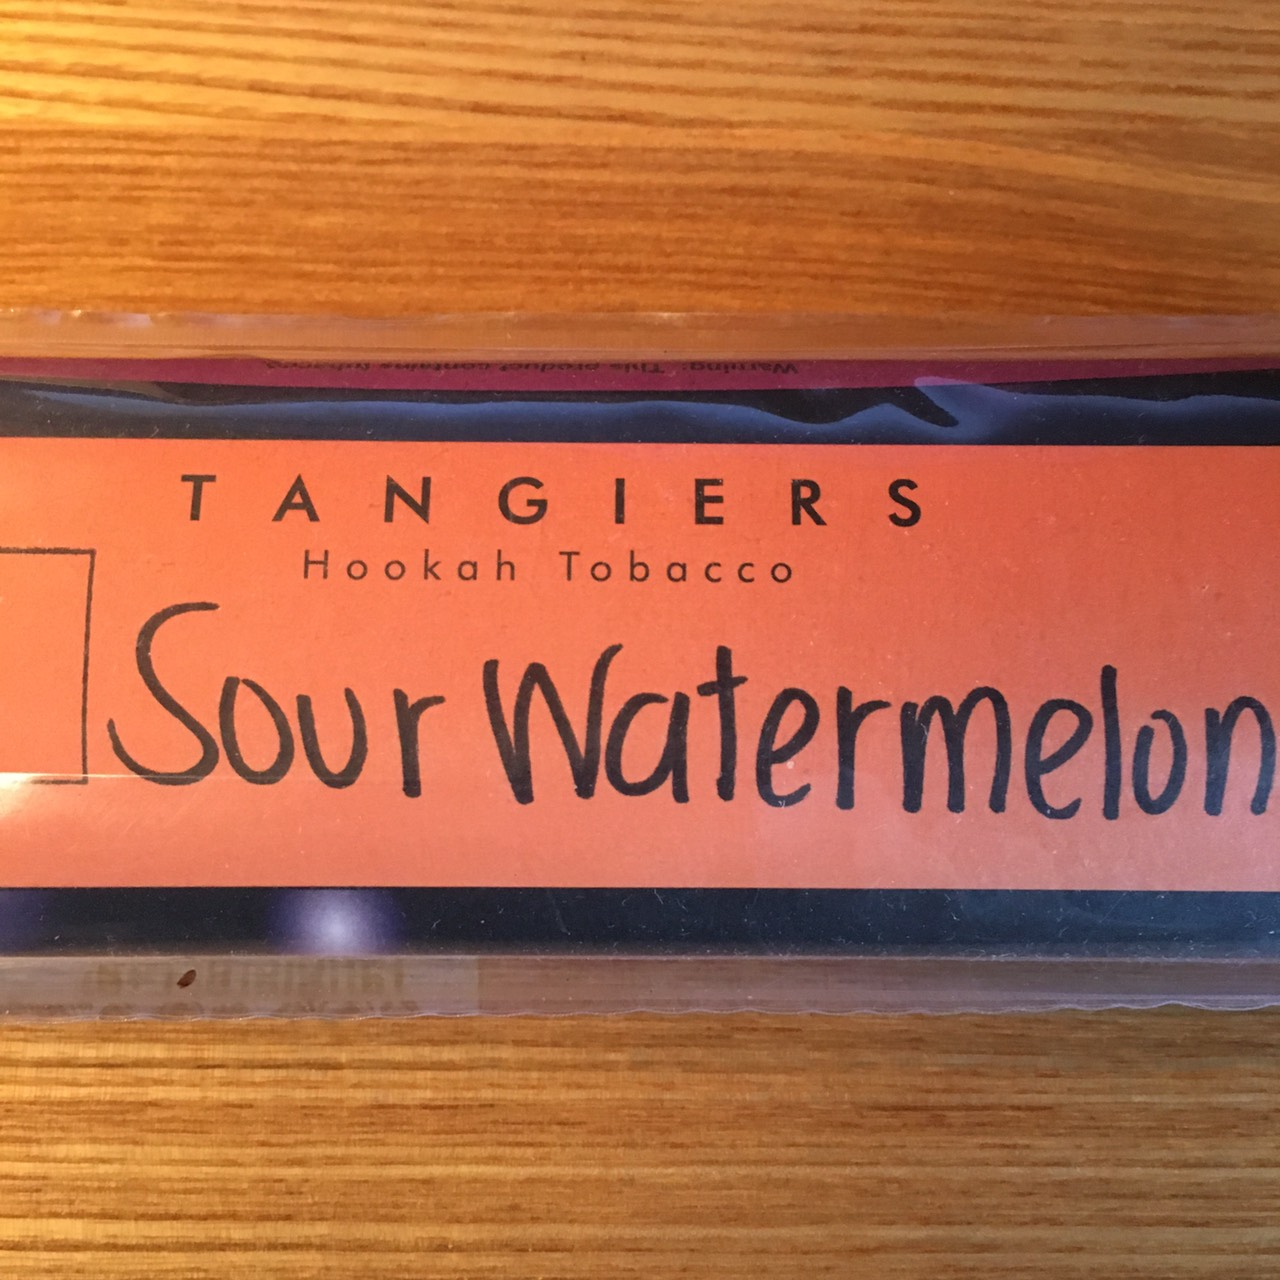 Tangiers Noir / Sour Watermelon(マッタリした甘さのスイカの香りと、少々の酸味)